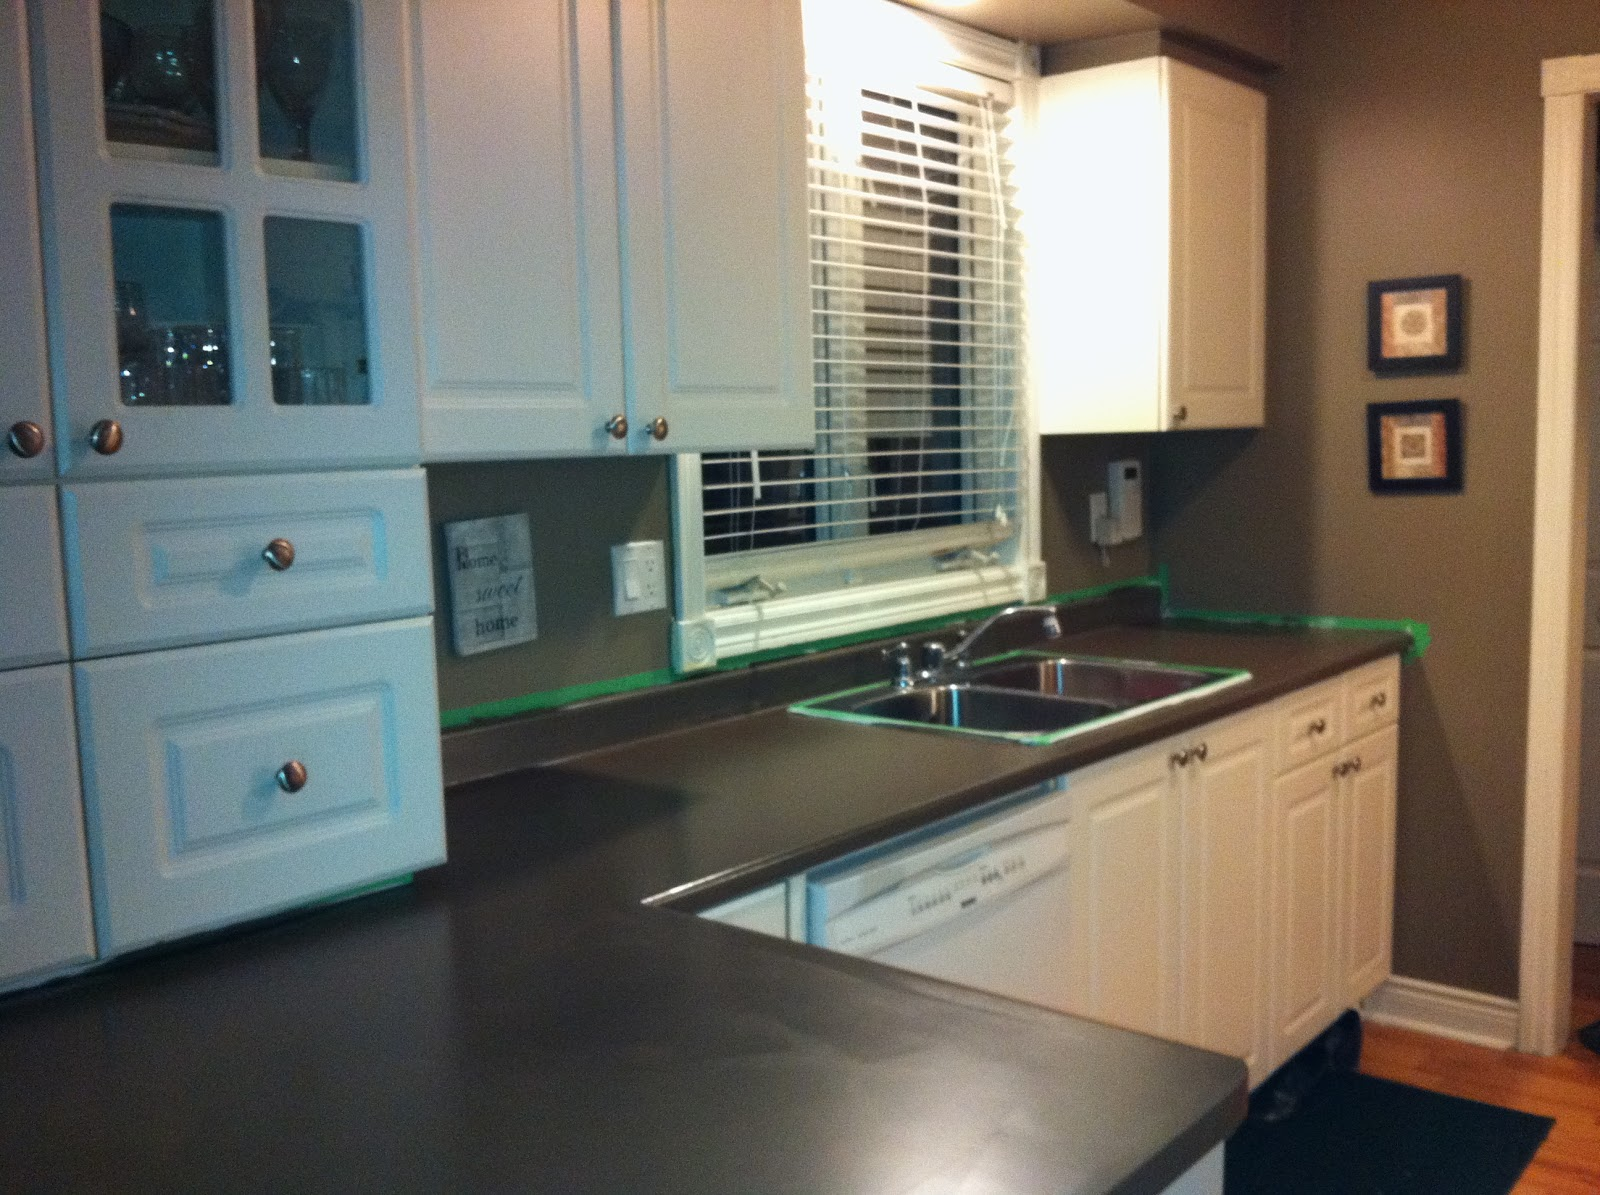 Countertop Paint Blue : just did one coat and let it dry overnight. I then rolled on my paint ...